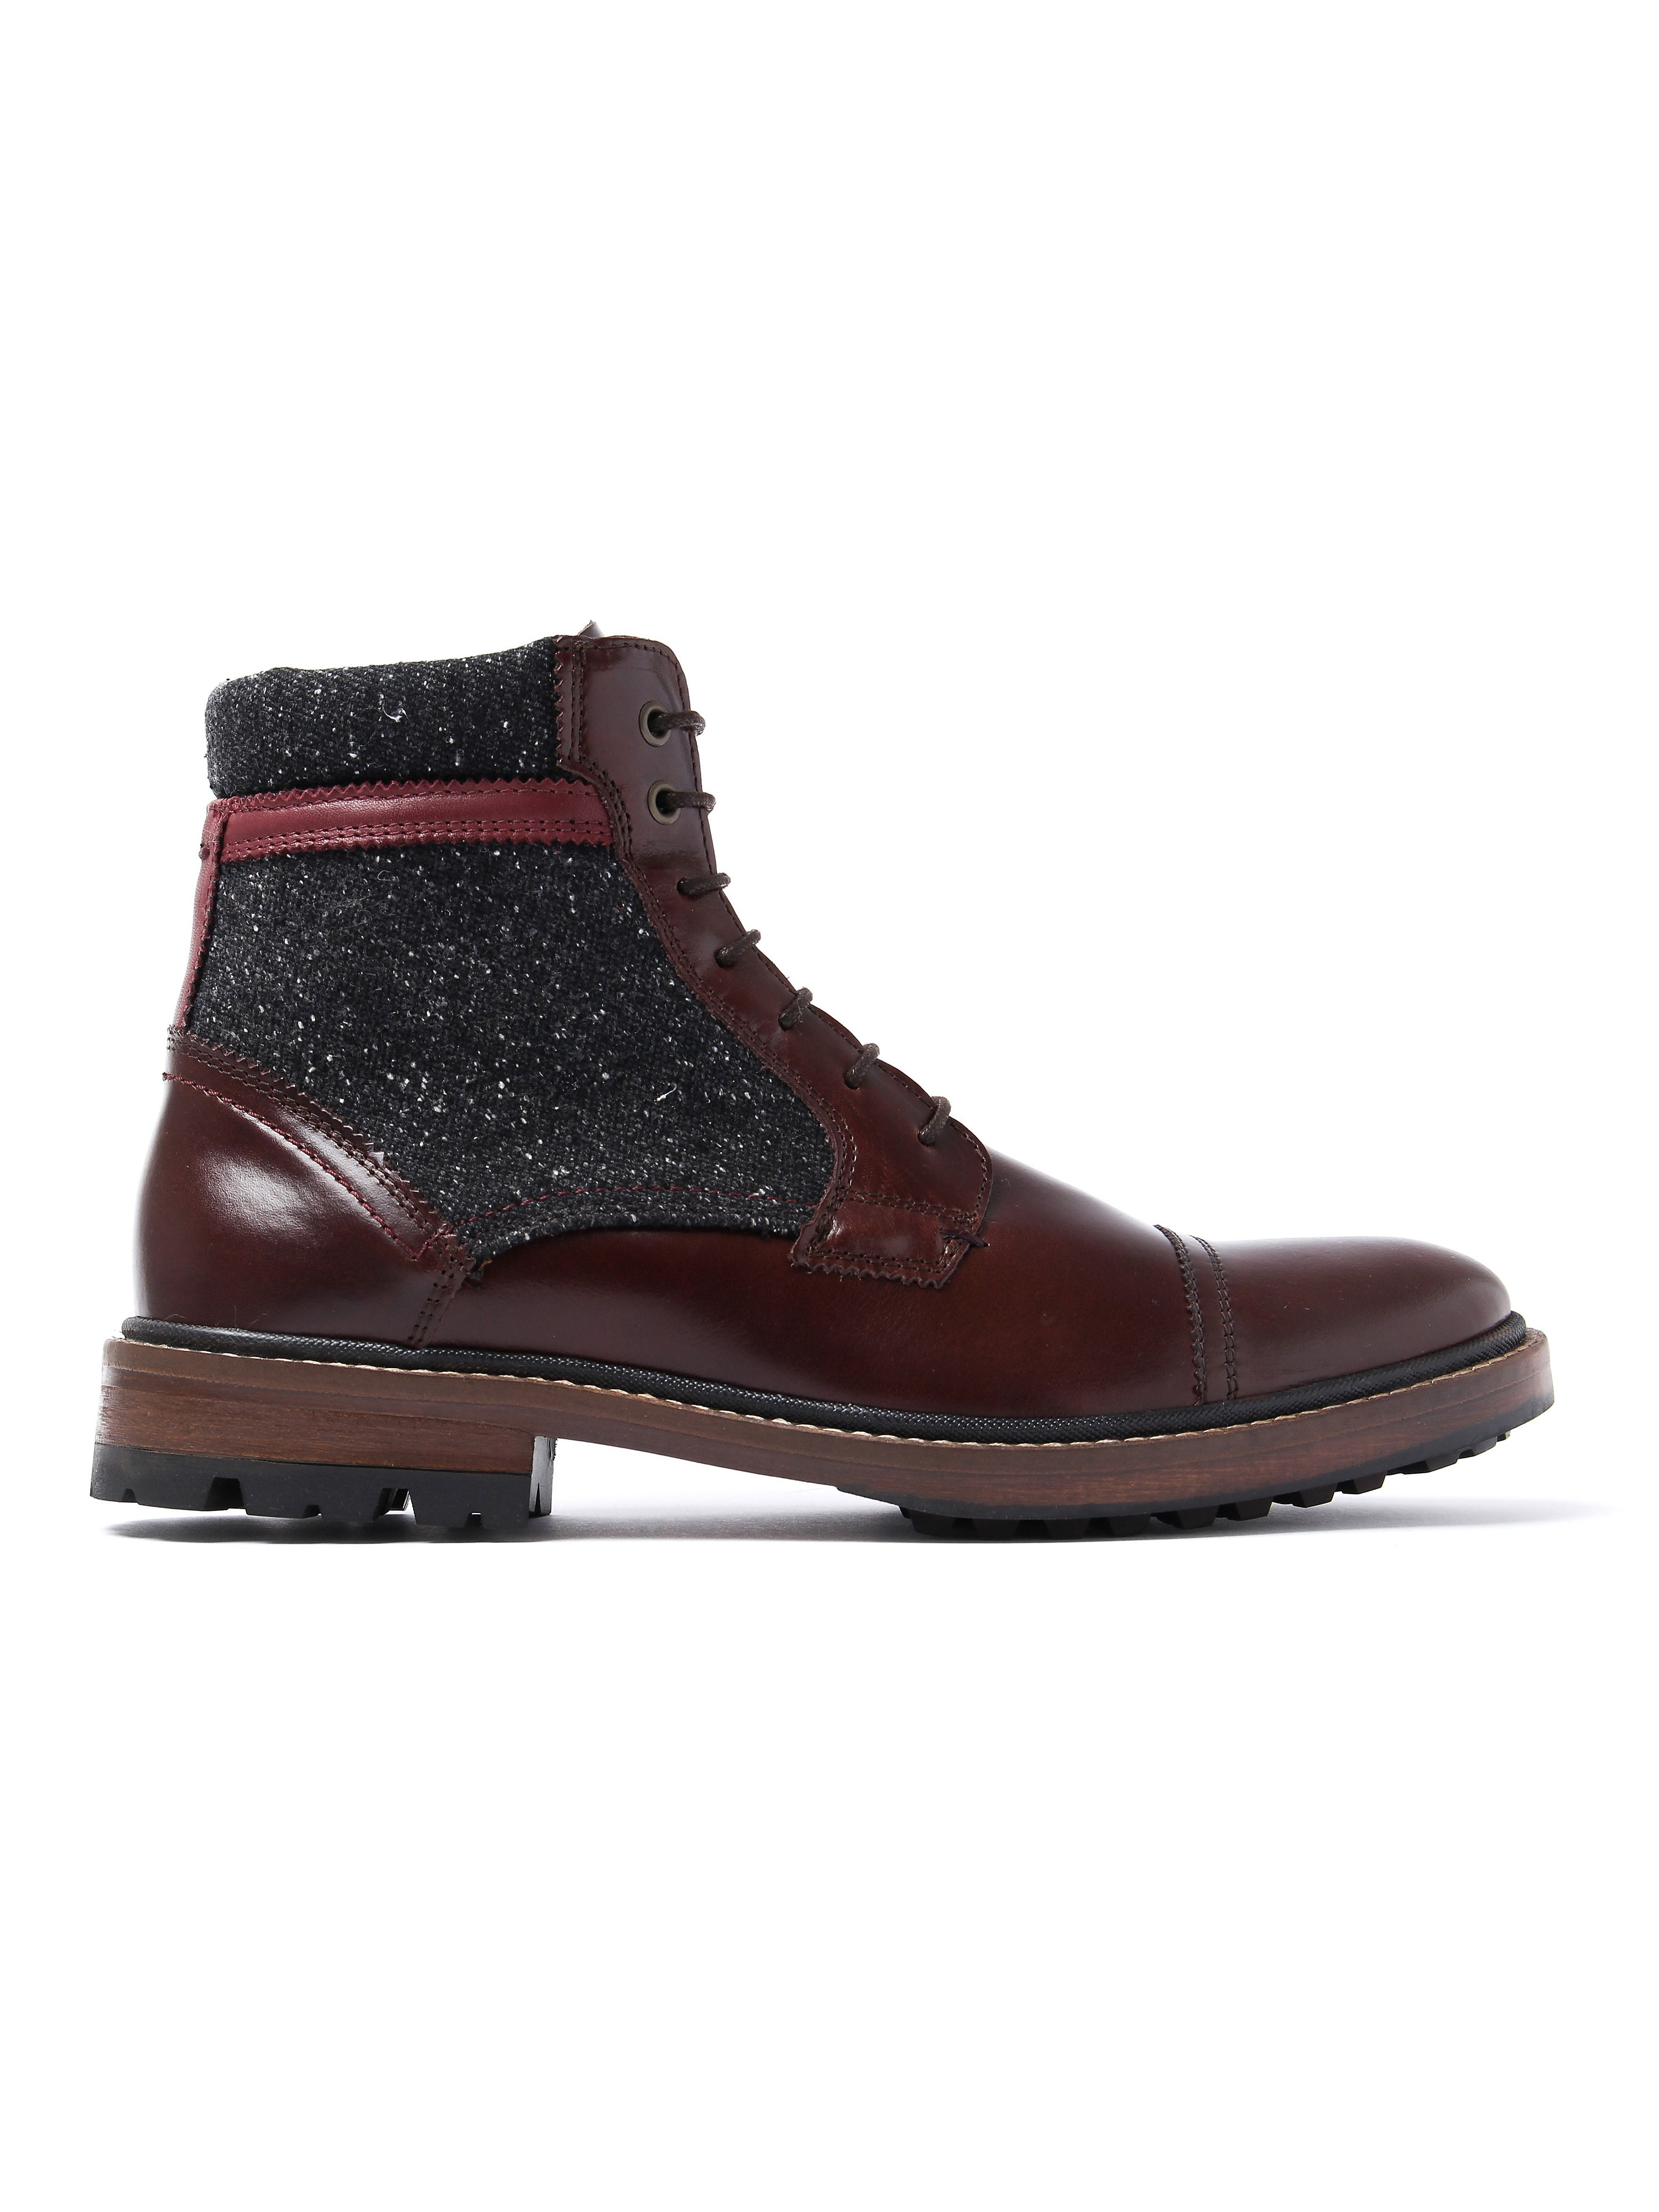 Ted Baker Men's Ruulen Ankle Boots - Brown Leather & Textile